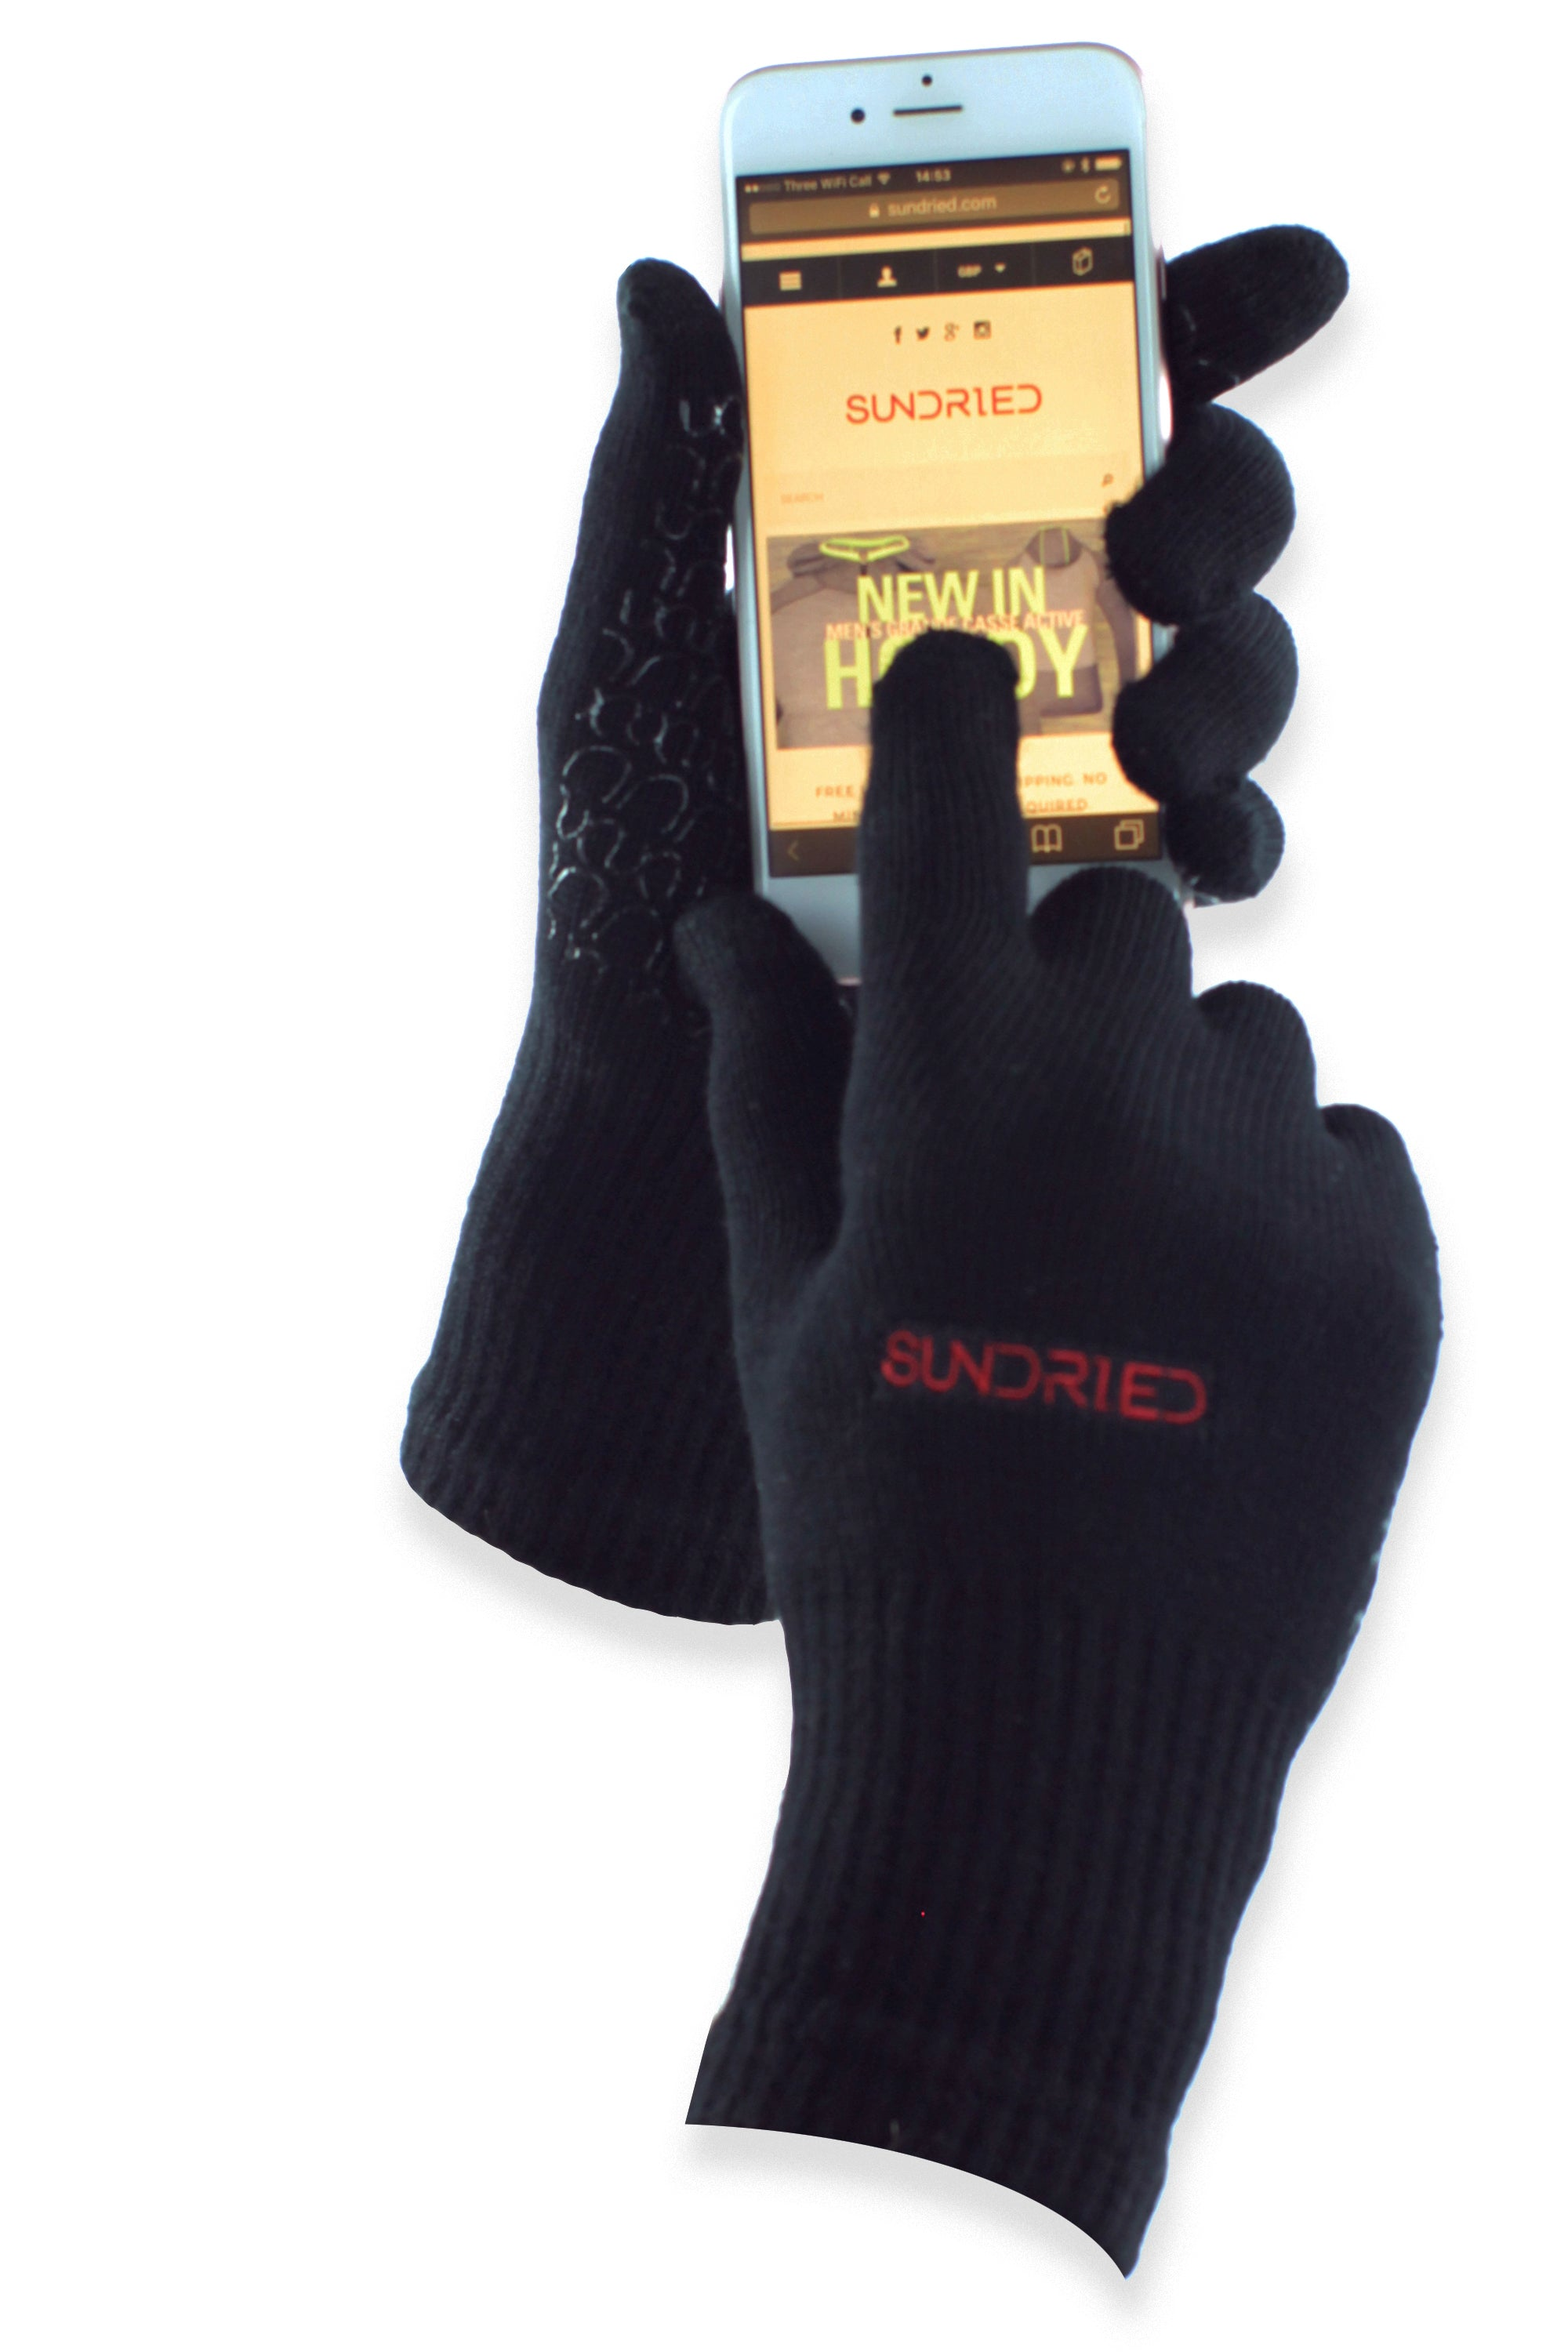 Sundried winter gloves bamboo recycled ethical